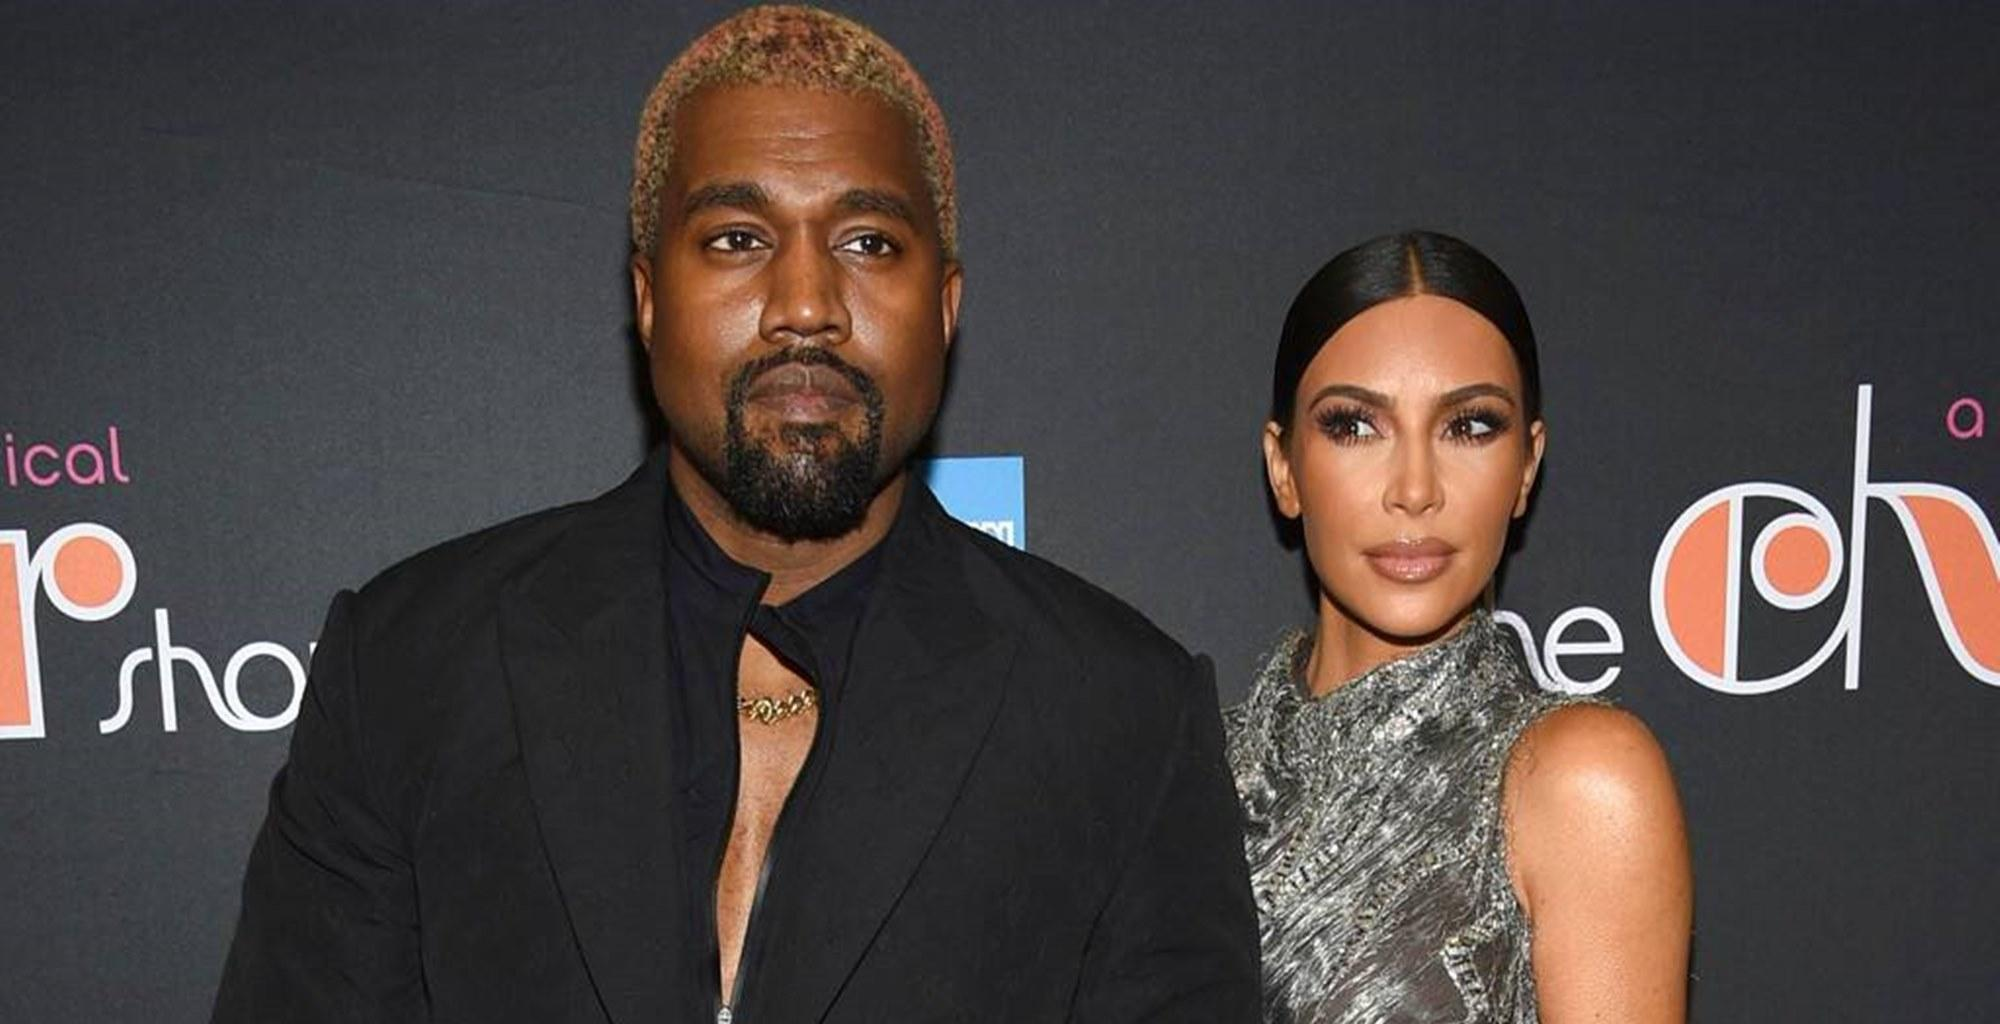 Kim Kardashian Issues An Emotional Plea After Kanye West's Erratic Abortion And Divorce Tweets